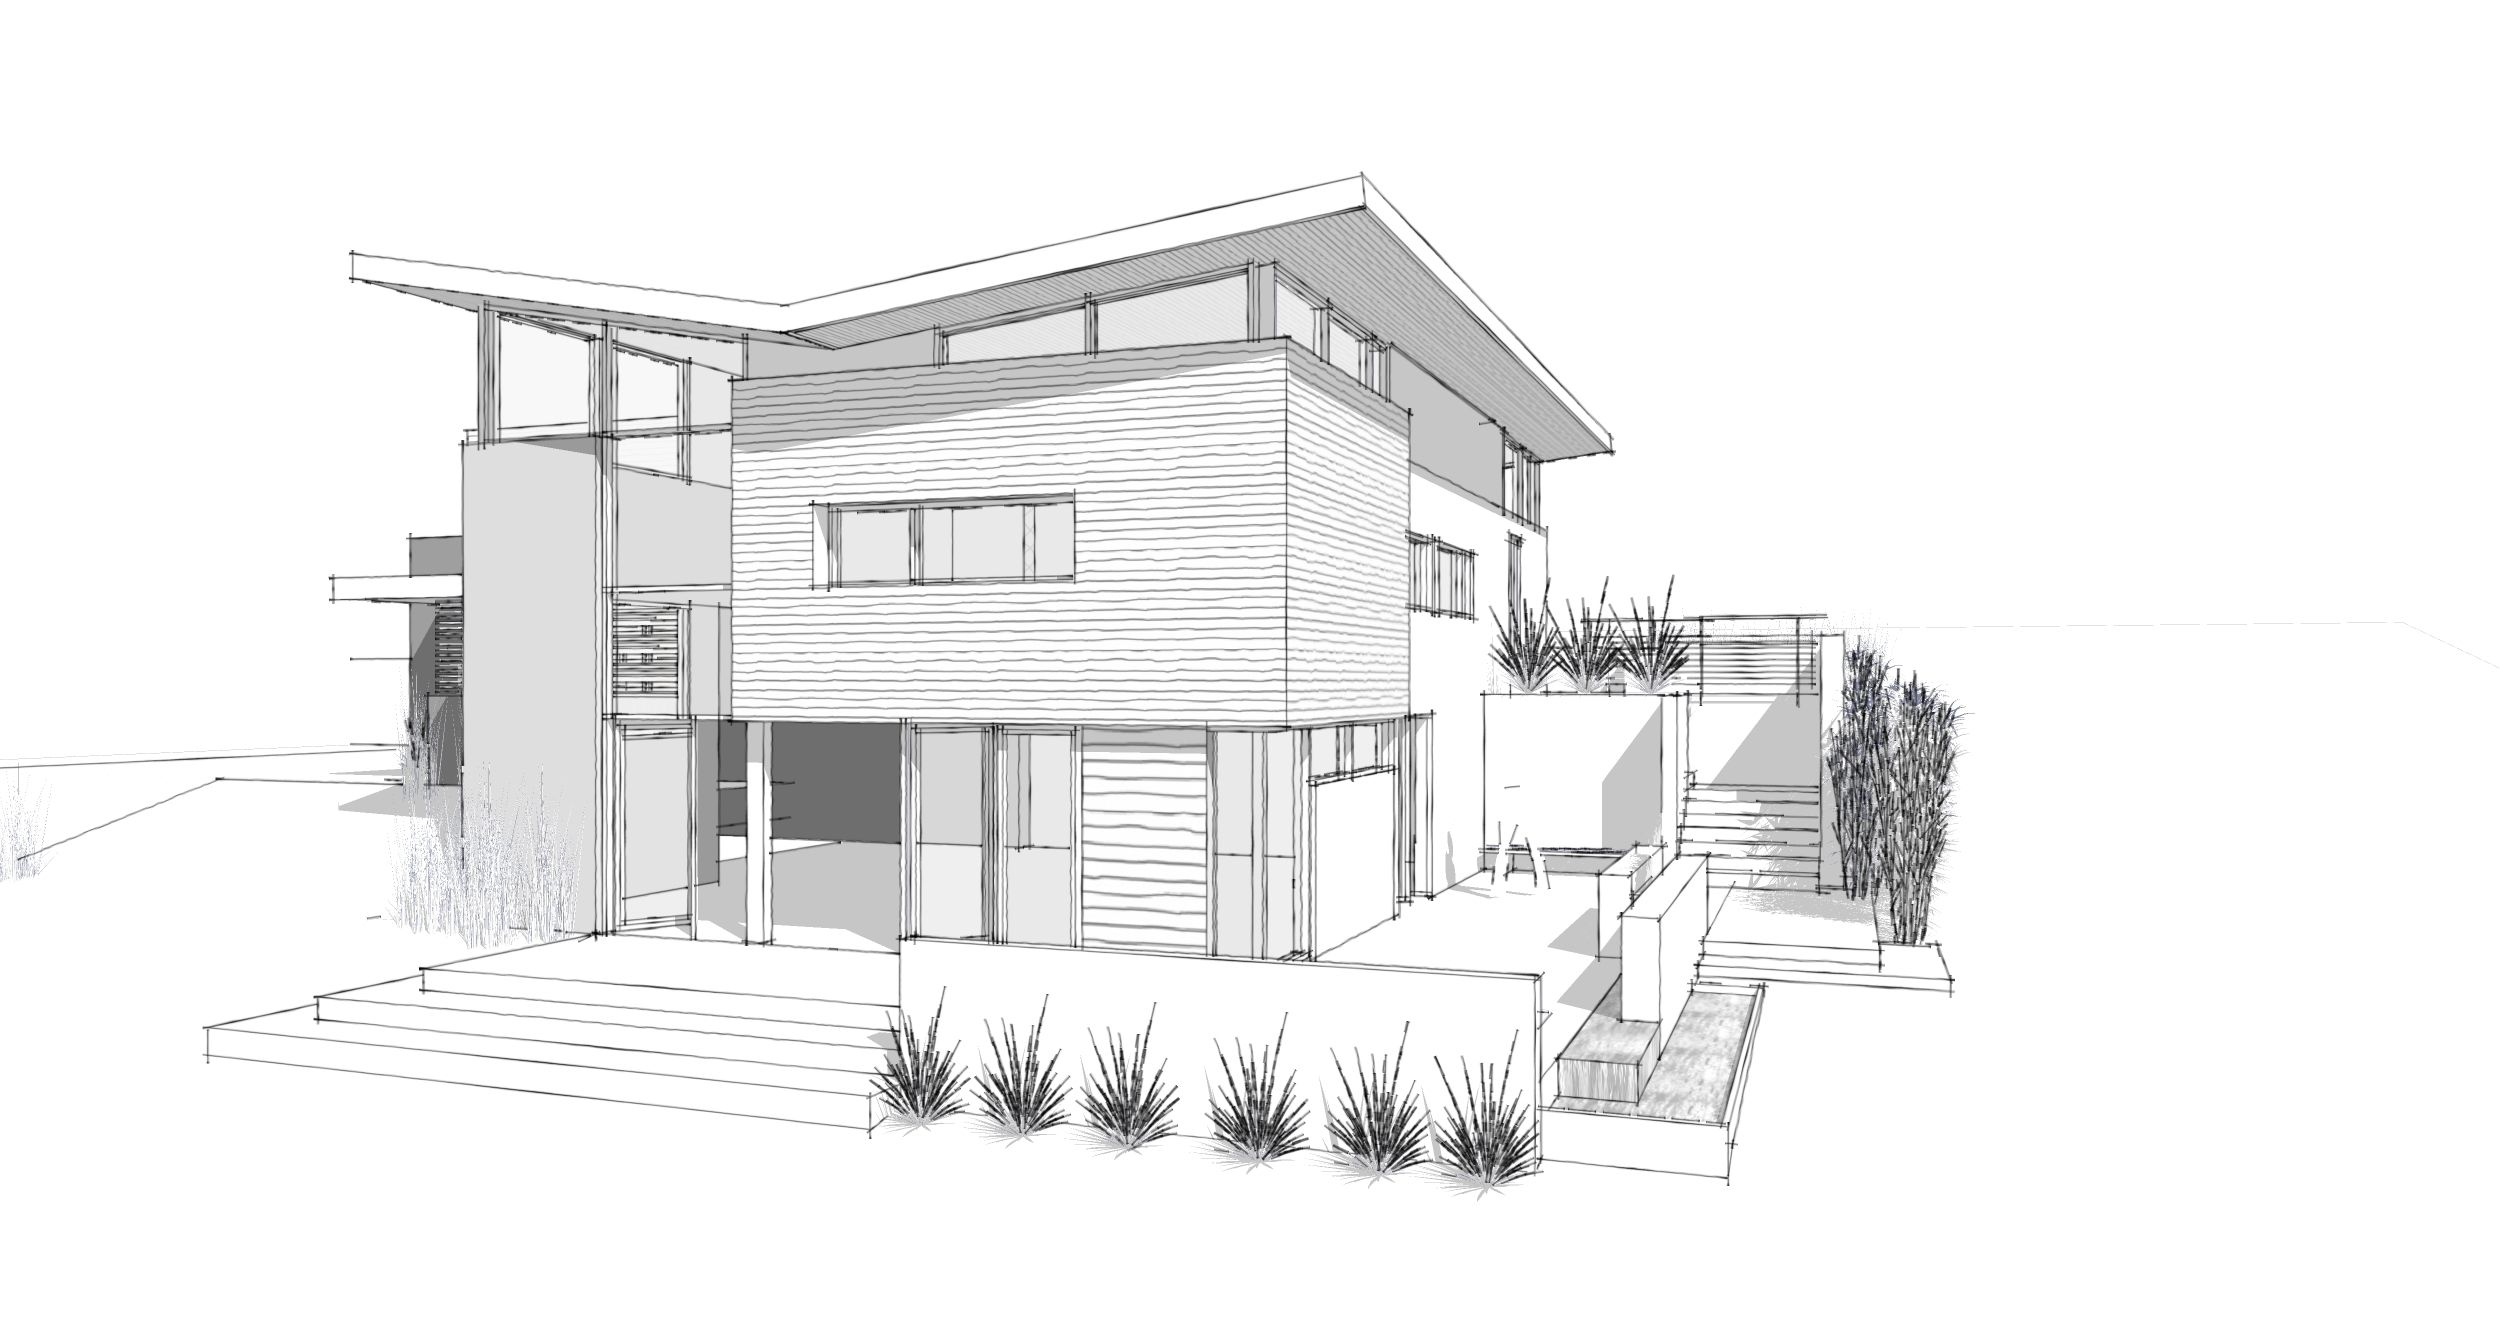 Modern home architecture sketches design ideas 13435 for Architecture design drawing